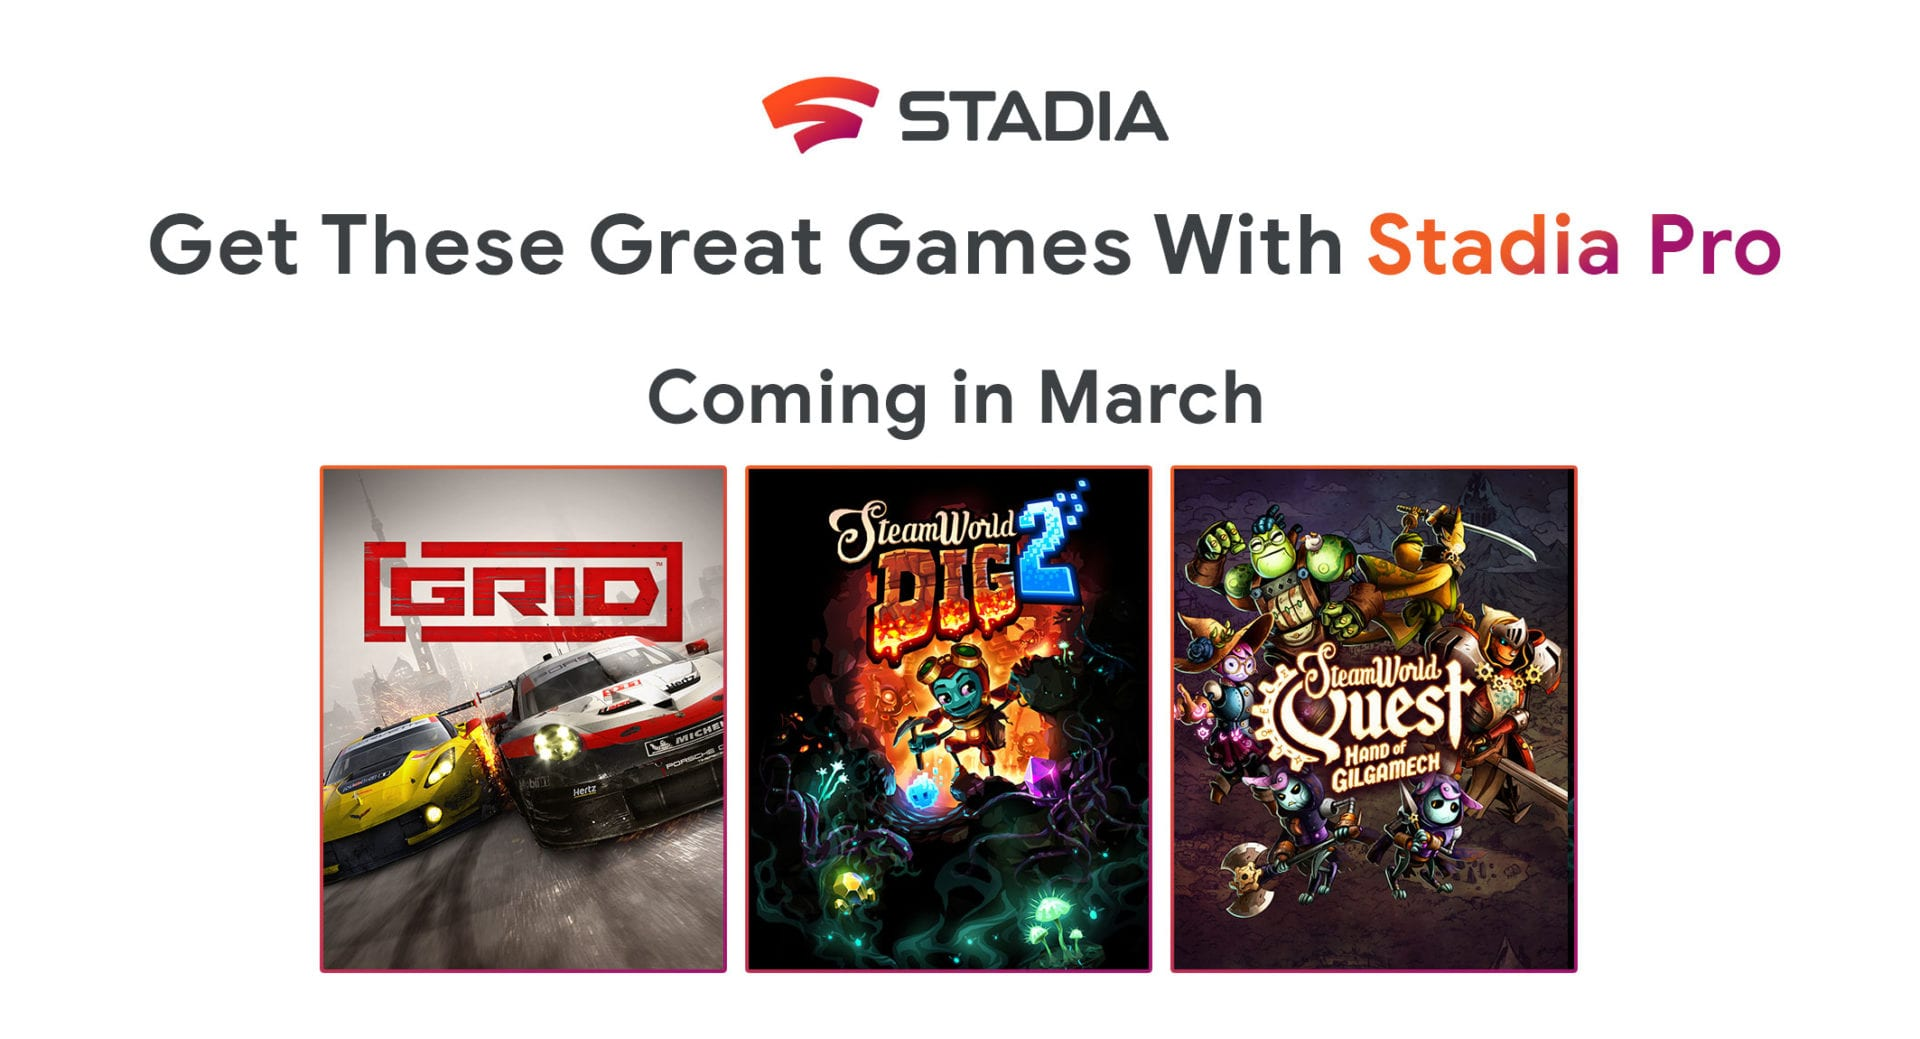 stadia, march